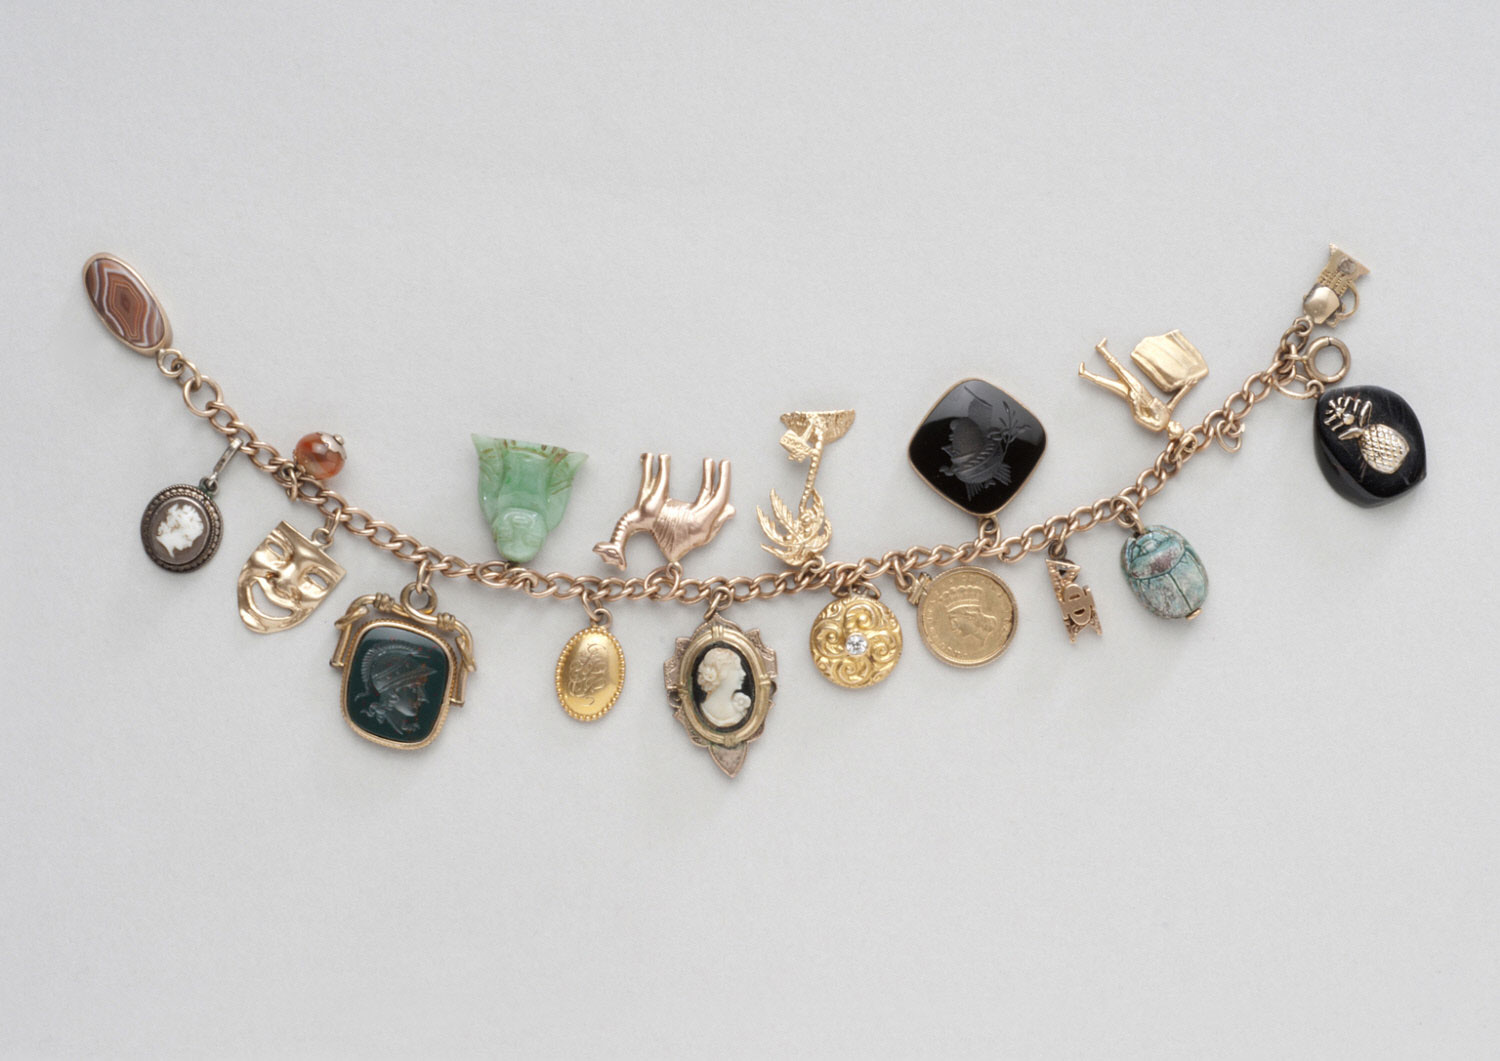 Bracelet with Cameo Charms